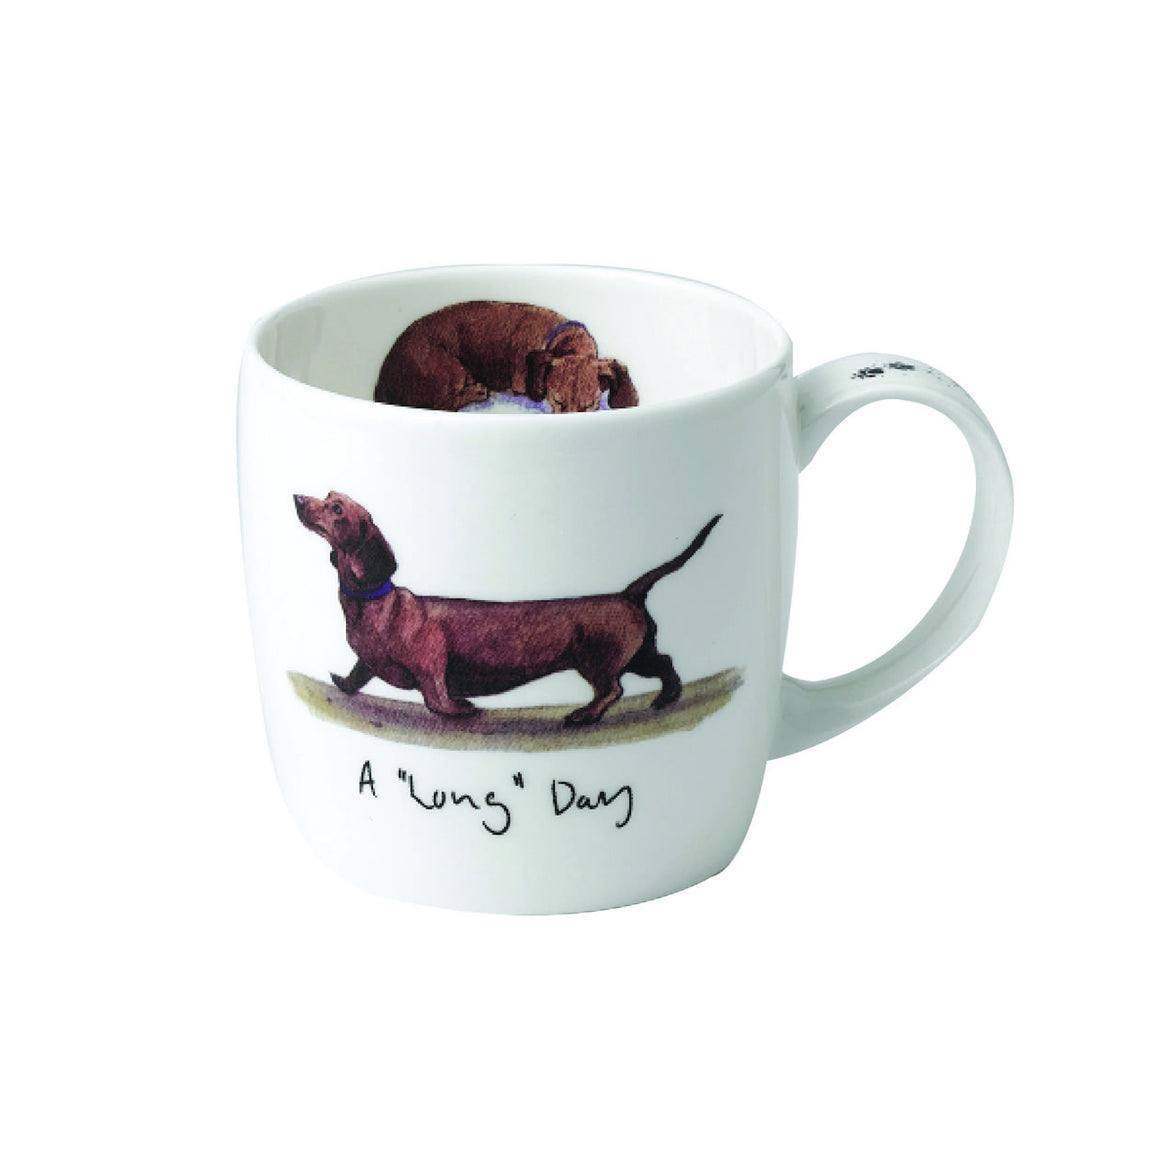 Katherine Tyrer 'A Long Day' fine bone china mug